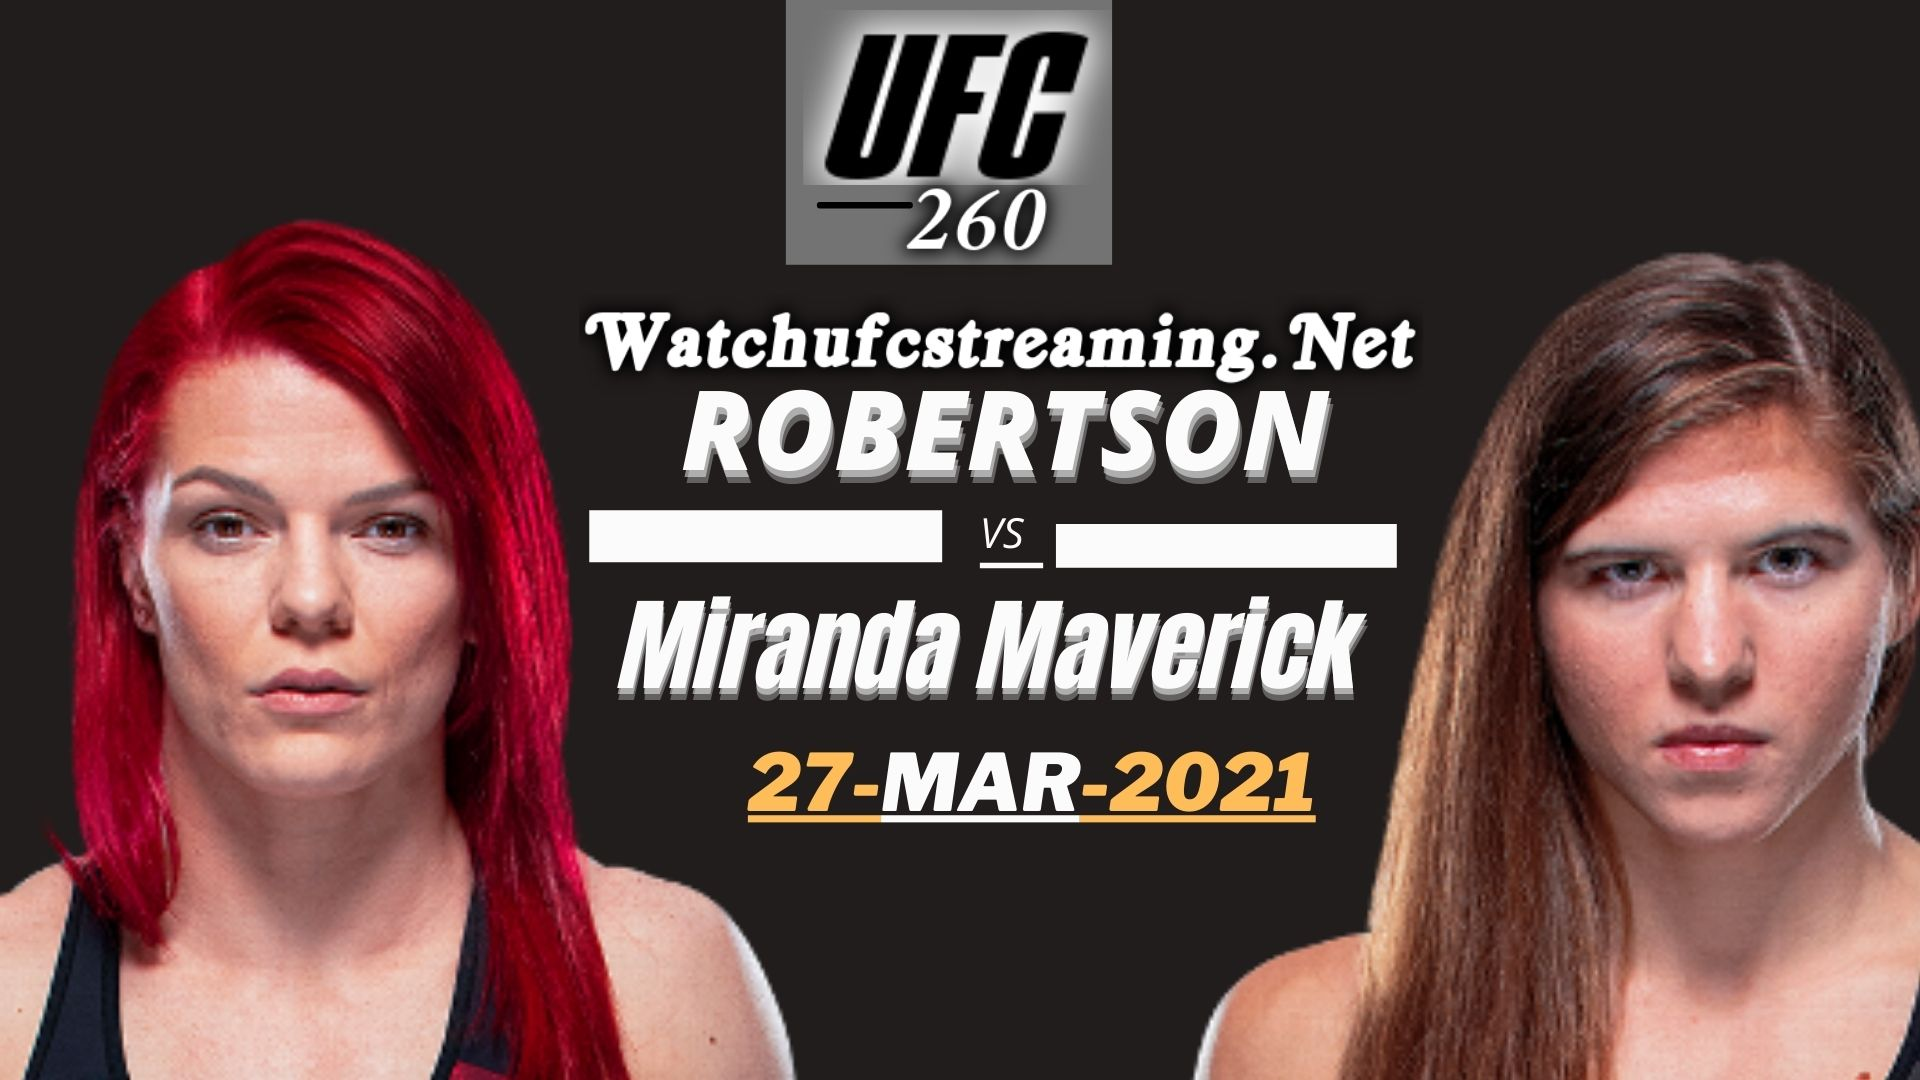 Highlights UFC 260: Gillian Vs Maverick 2021